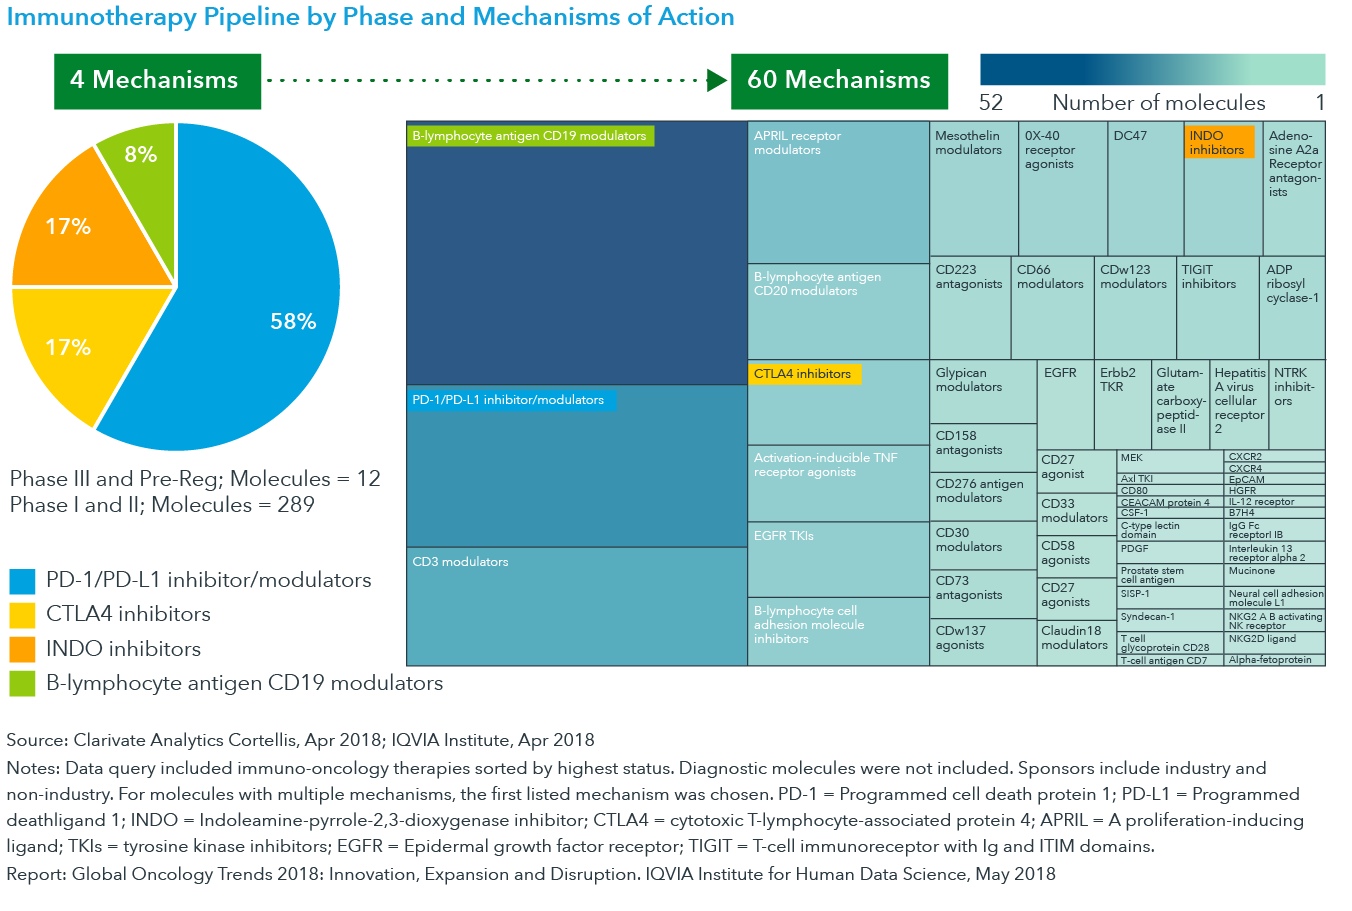 Chart 31: Immunotherapy Pipeline by Phase and Mechanisms of Action